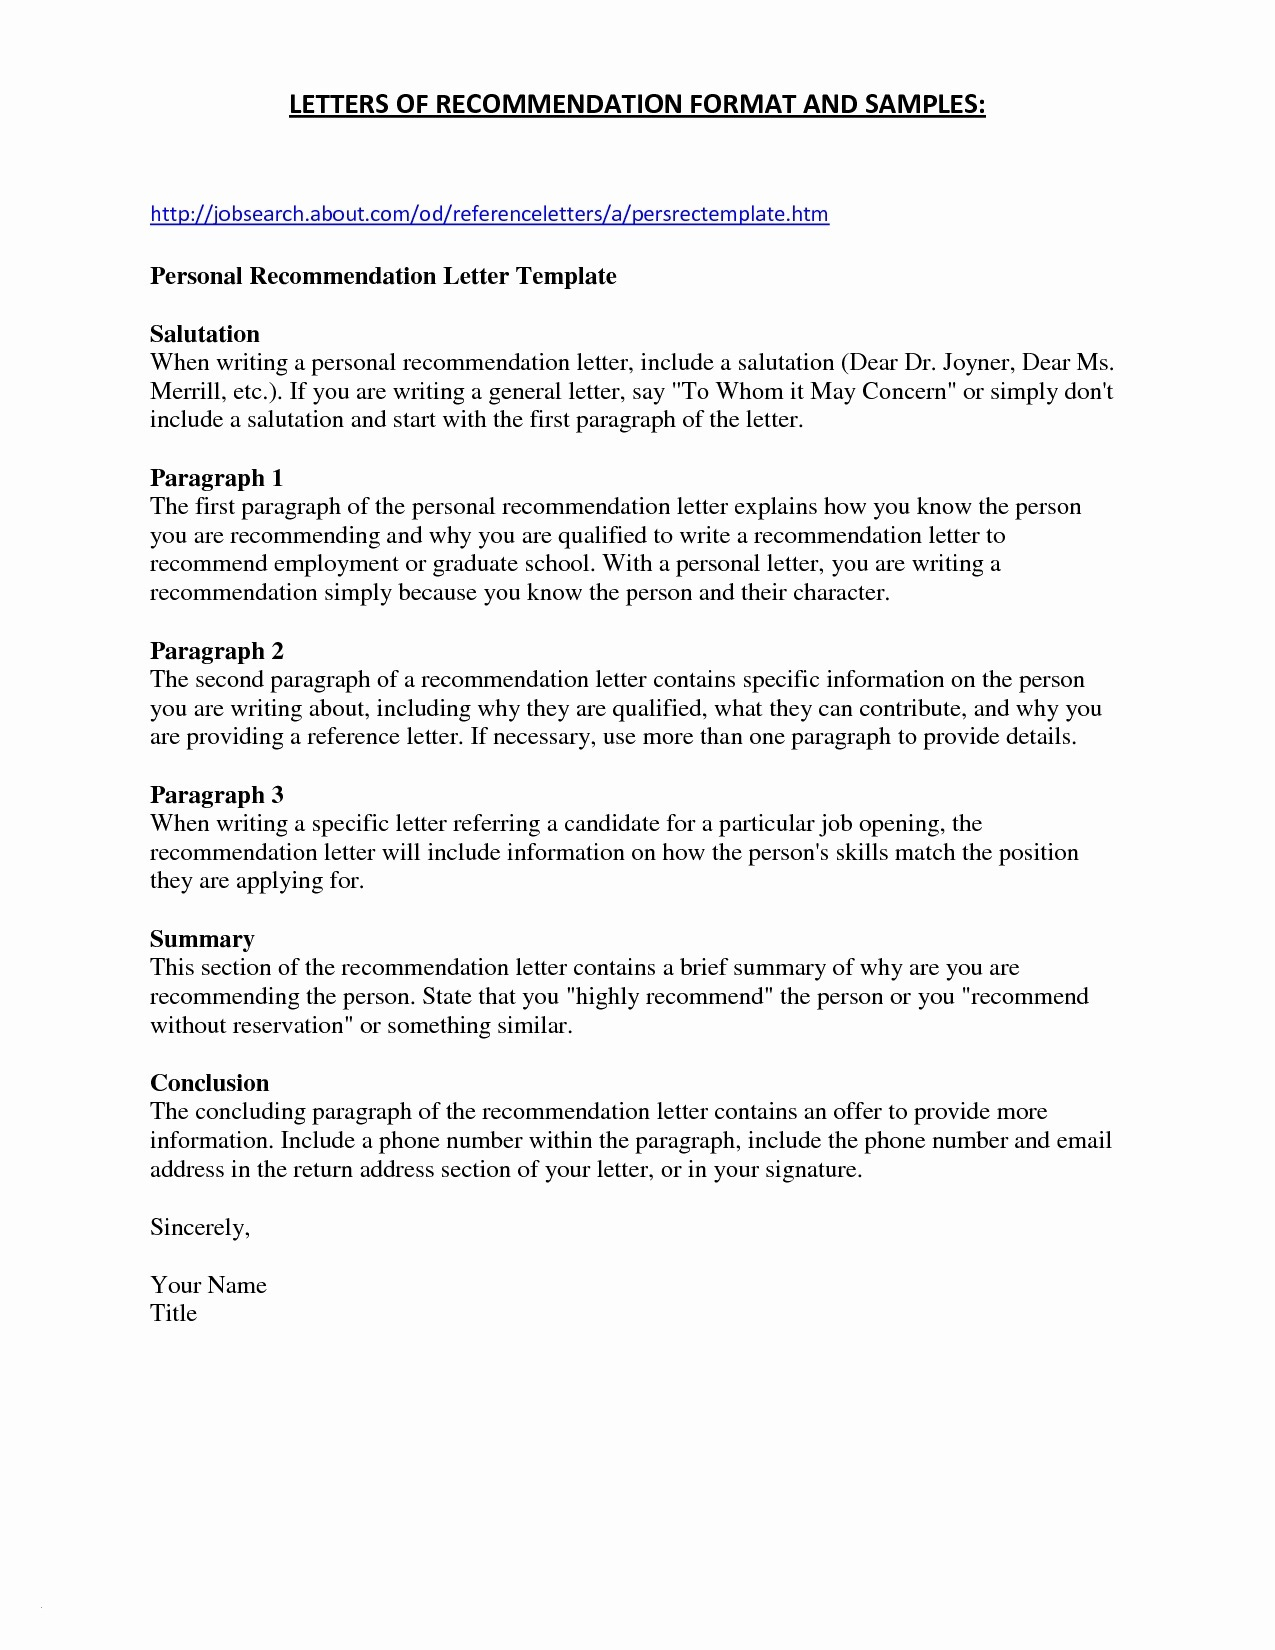 Graduate School Resume Template Microsoft Word - Creating A Resume Template In Word Inspirational Resume formats